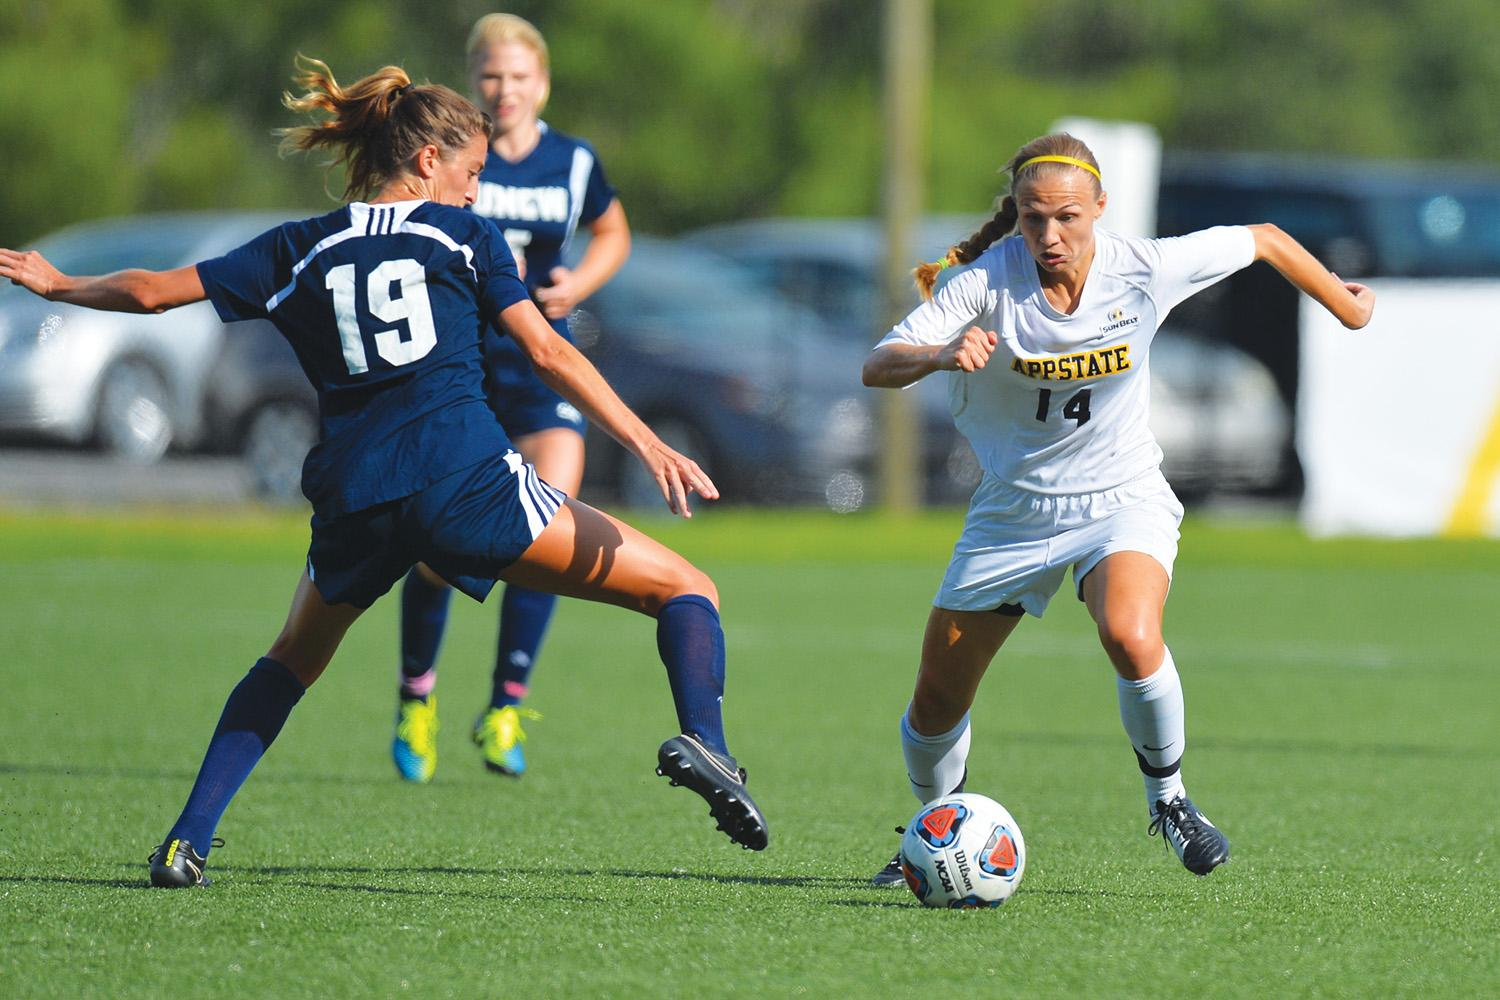 Senior+forward+Samantha+Childress+dribbles+around+the+defense+during+Friday%E2%80%99s+home+game+against+UNCW.+The+Mountaineers+scored+three+unanswered+second+half+goals+to+defeat+UNCW%2C+3-2.+Photo+courtesy+of+Tim+Cowie++%7C++Appalachian+State+Athletics